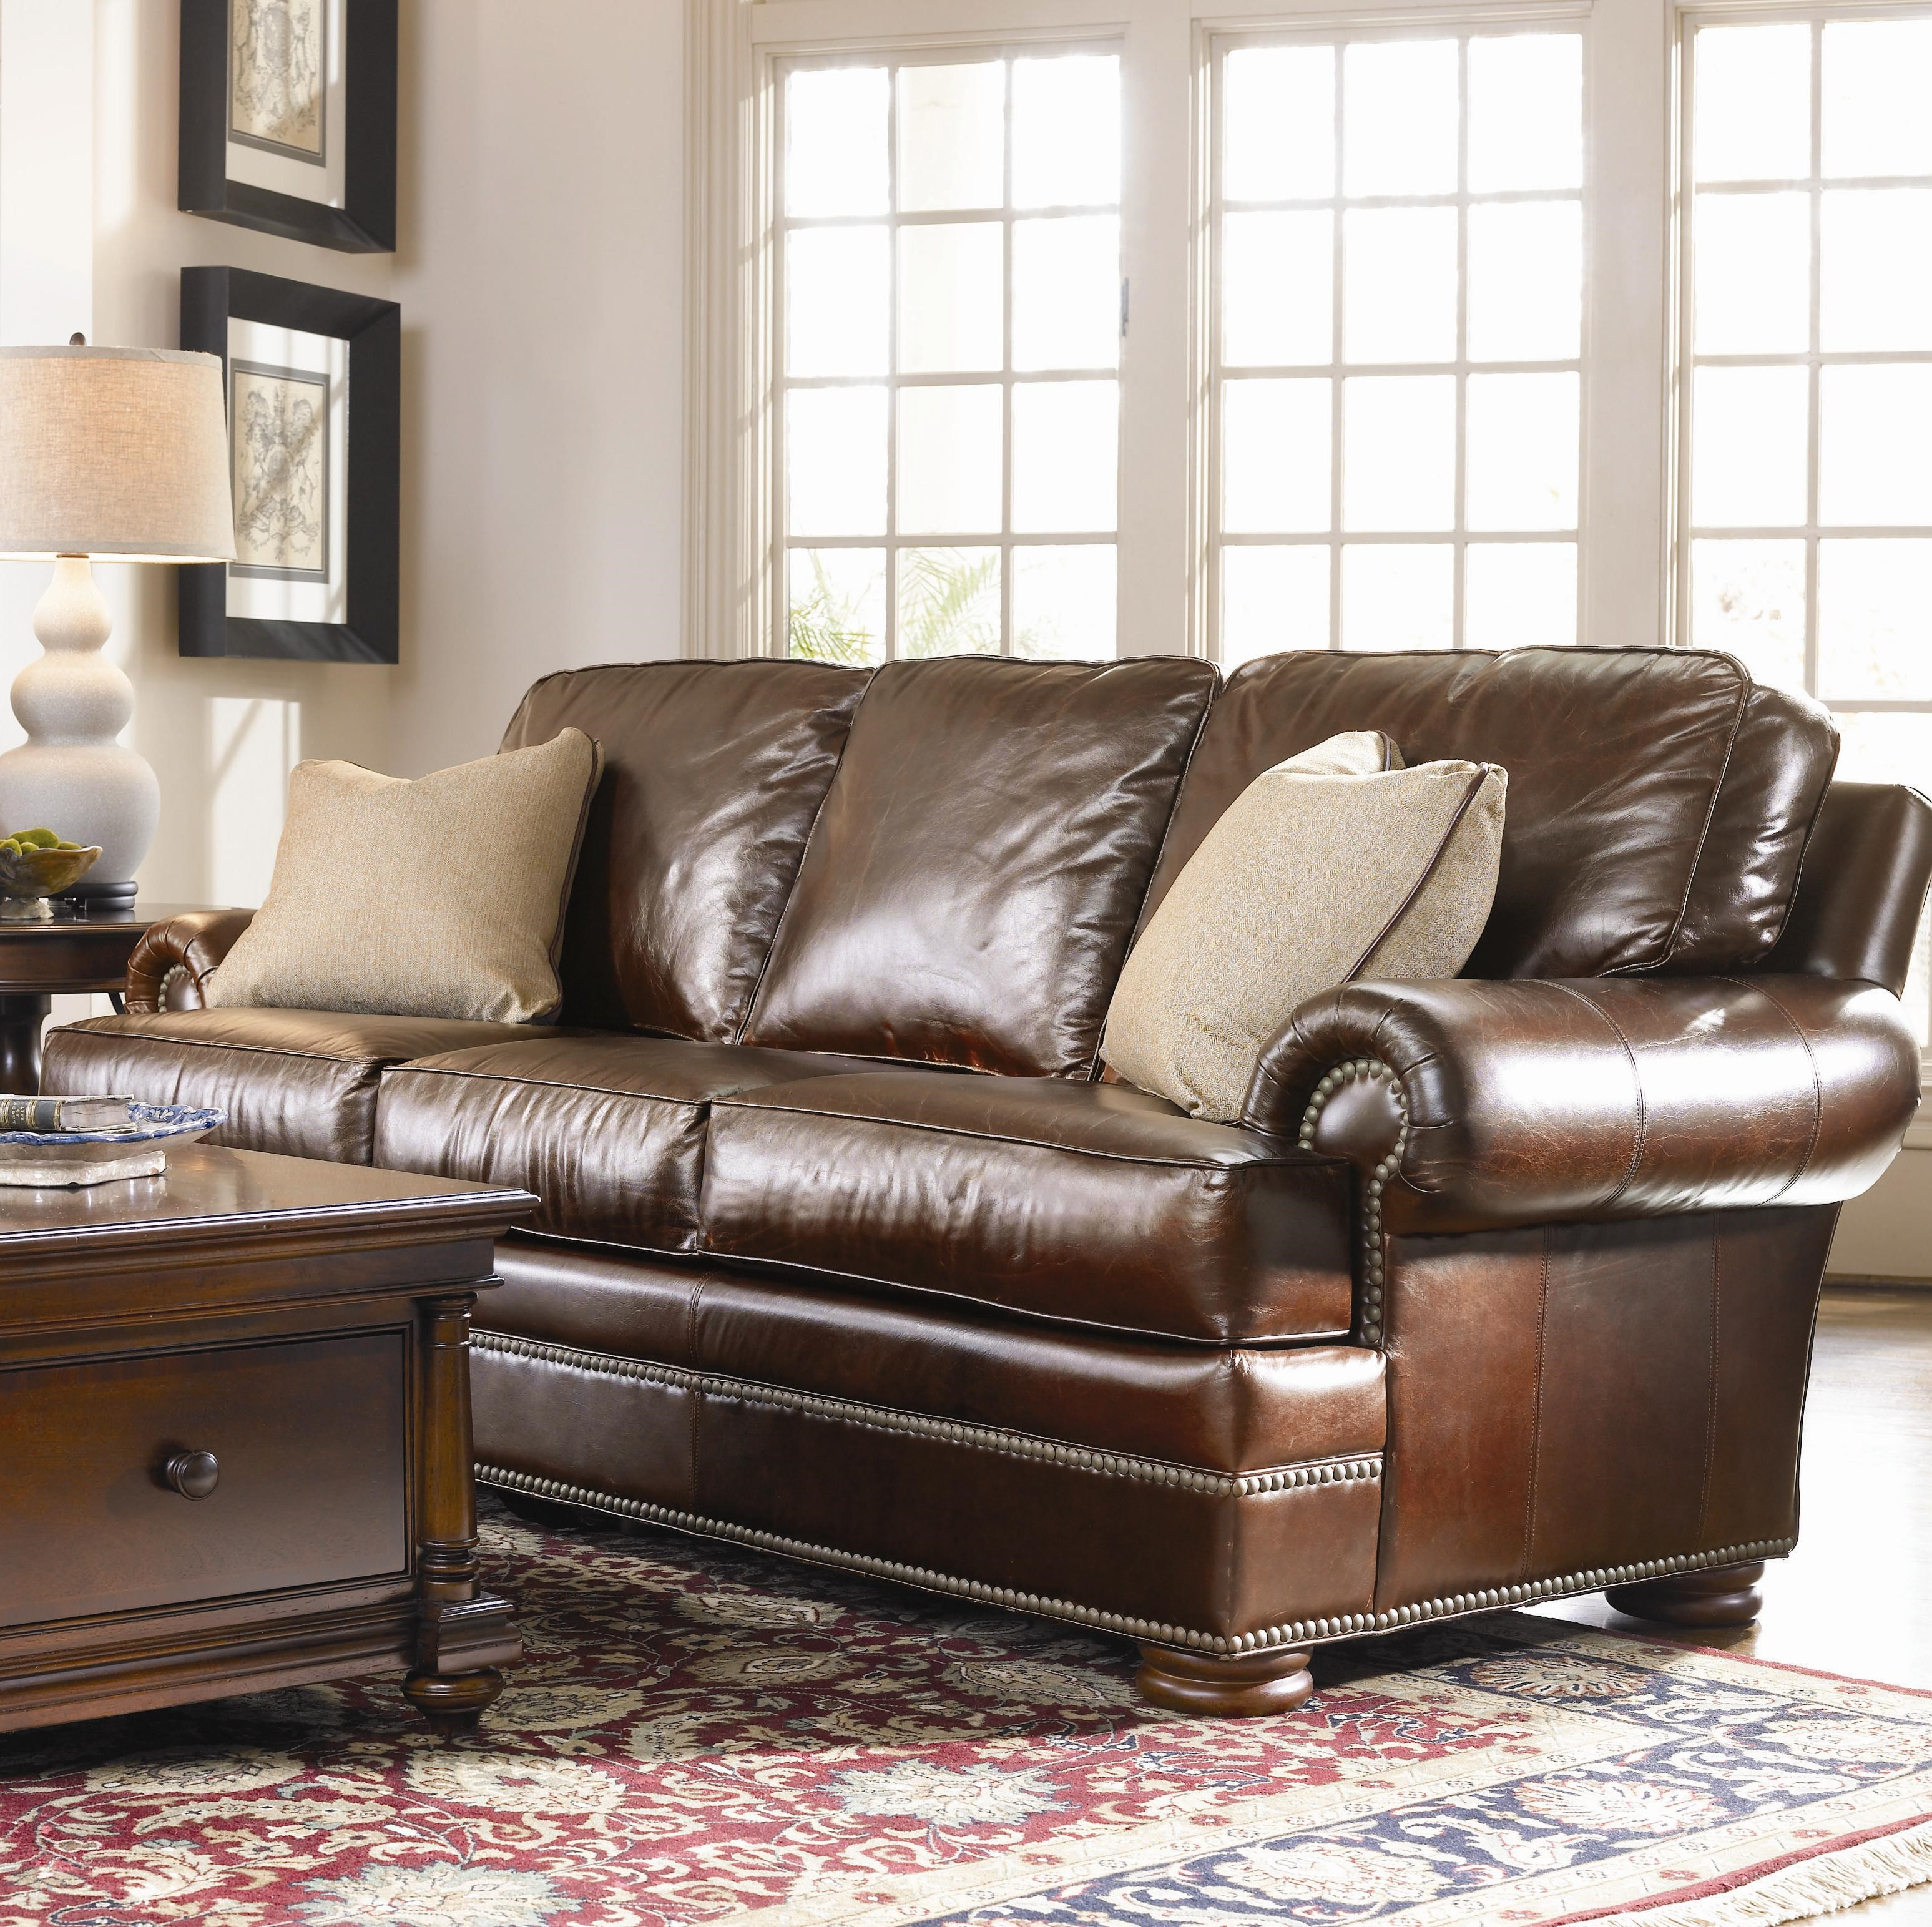 thomasville leather chair chairs that convert to beds ashby sofa home the honoroak